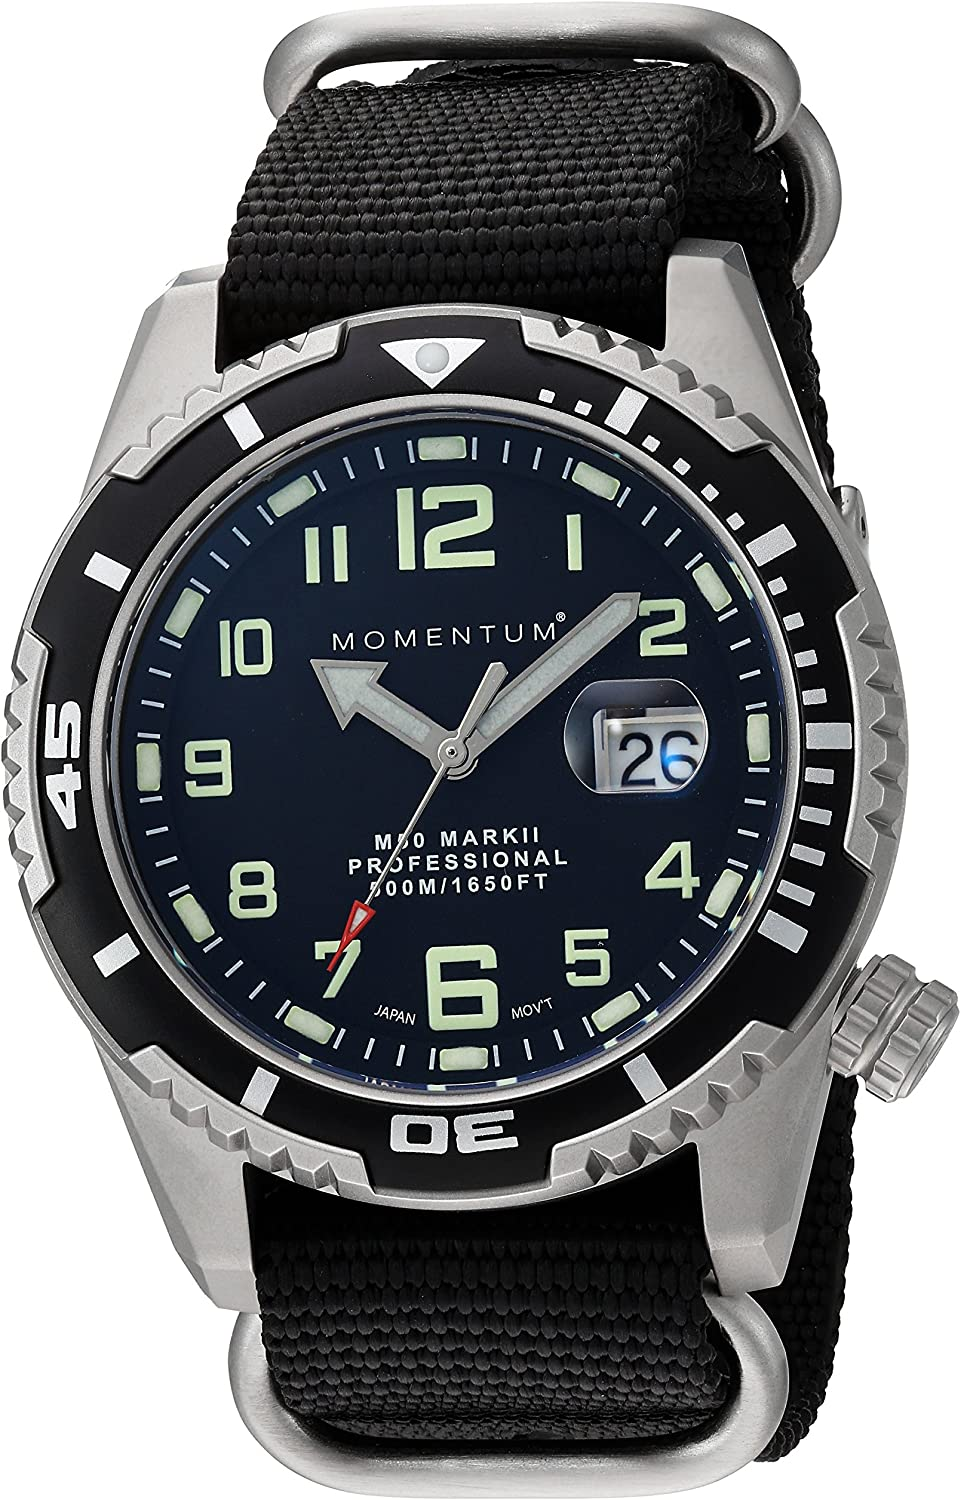 Momentum Men Dive Series Quartz Sports Watch – M50 Series Water Resistant, Easy to Read Dial, Date, Screw Crown, Stainless Steel Case